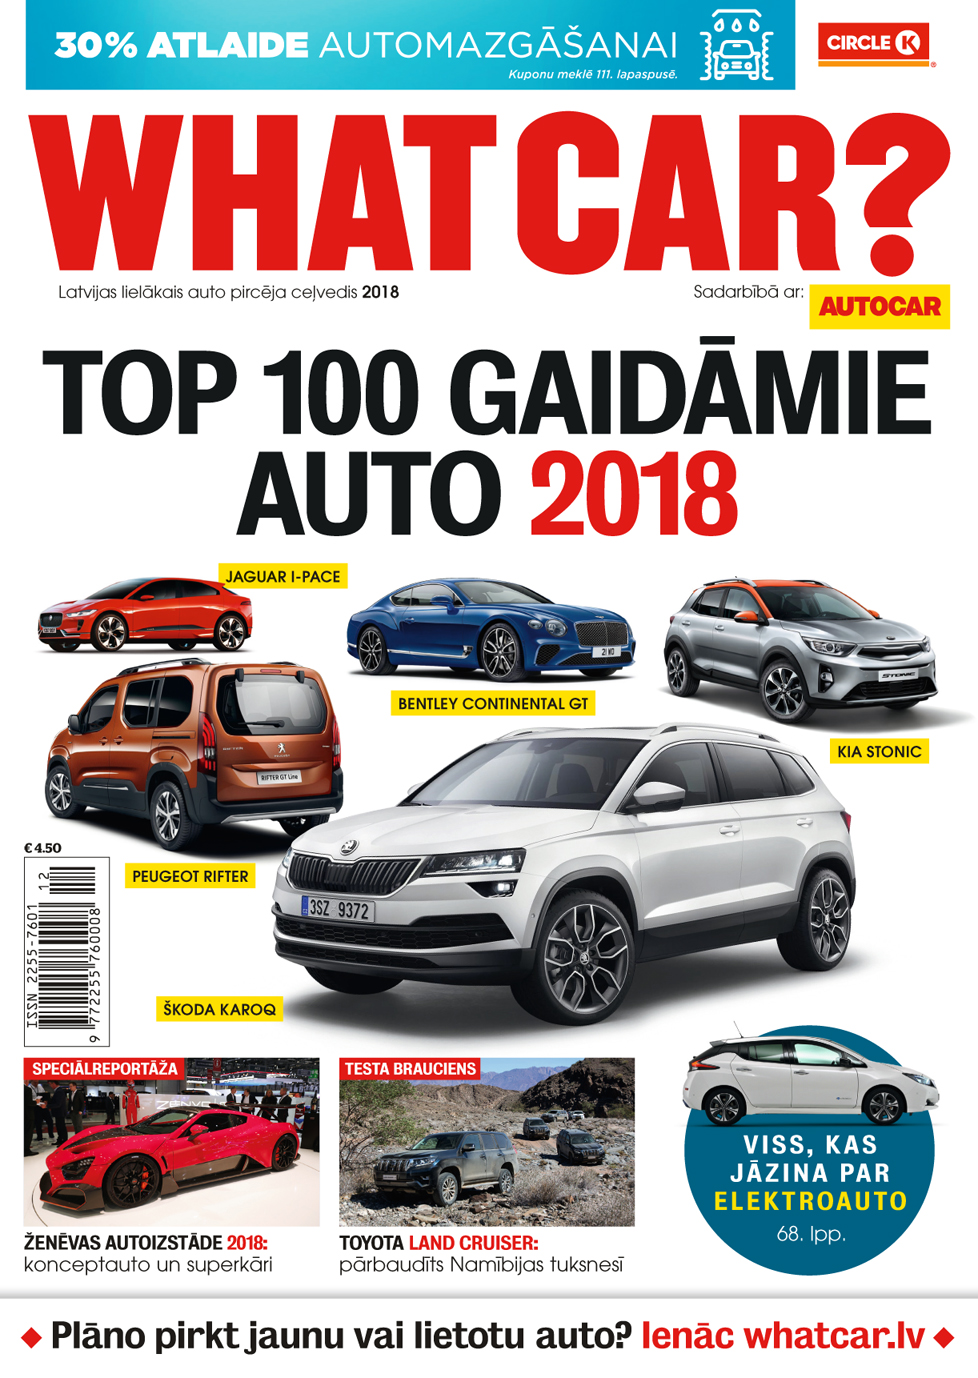 What Car? TOP100